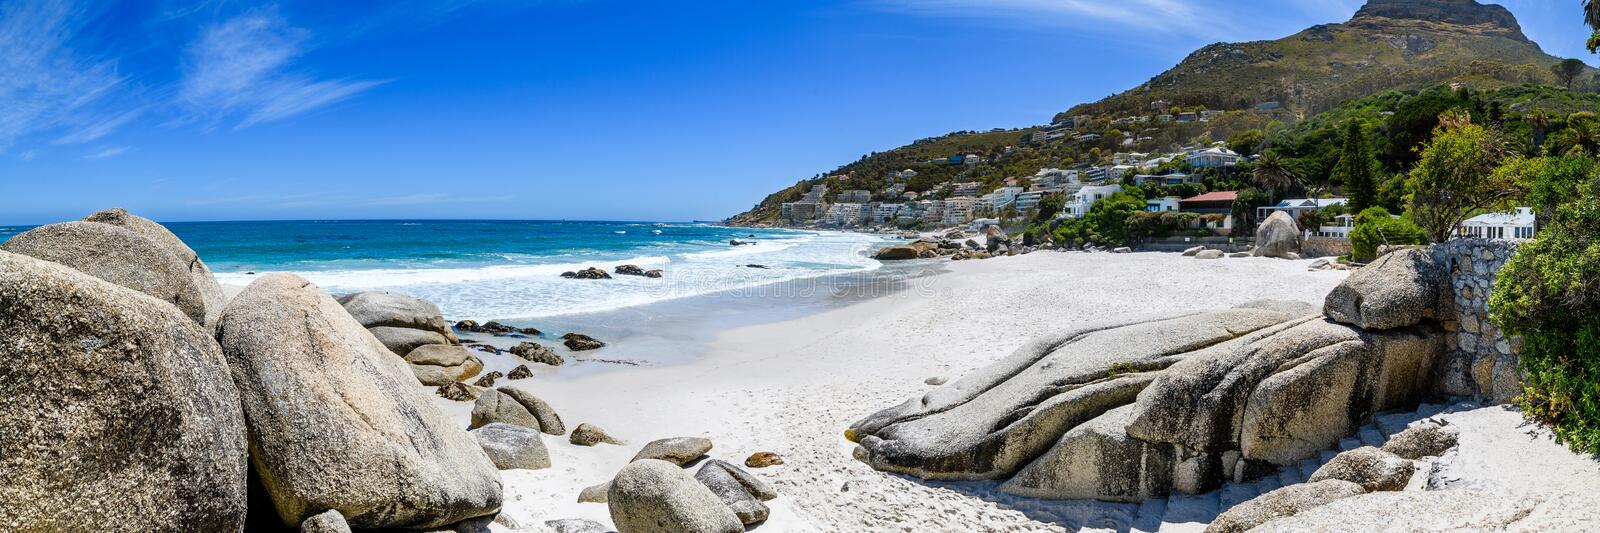 A panoramic view looking down on the beautiful white sand beaches of clifton in the cape town area of south africa.6 stock photo